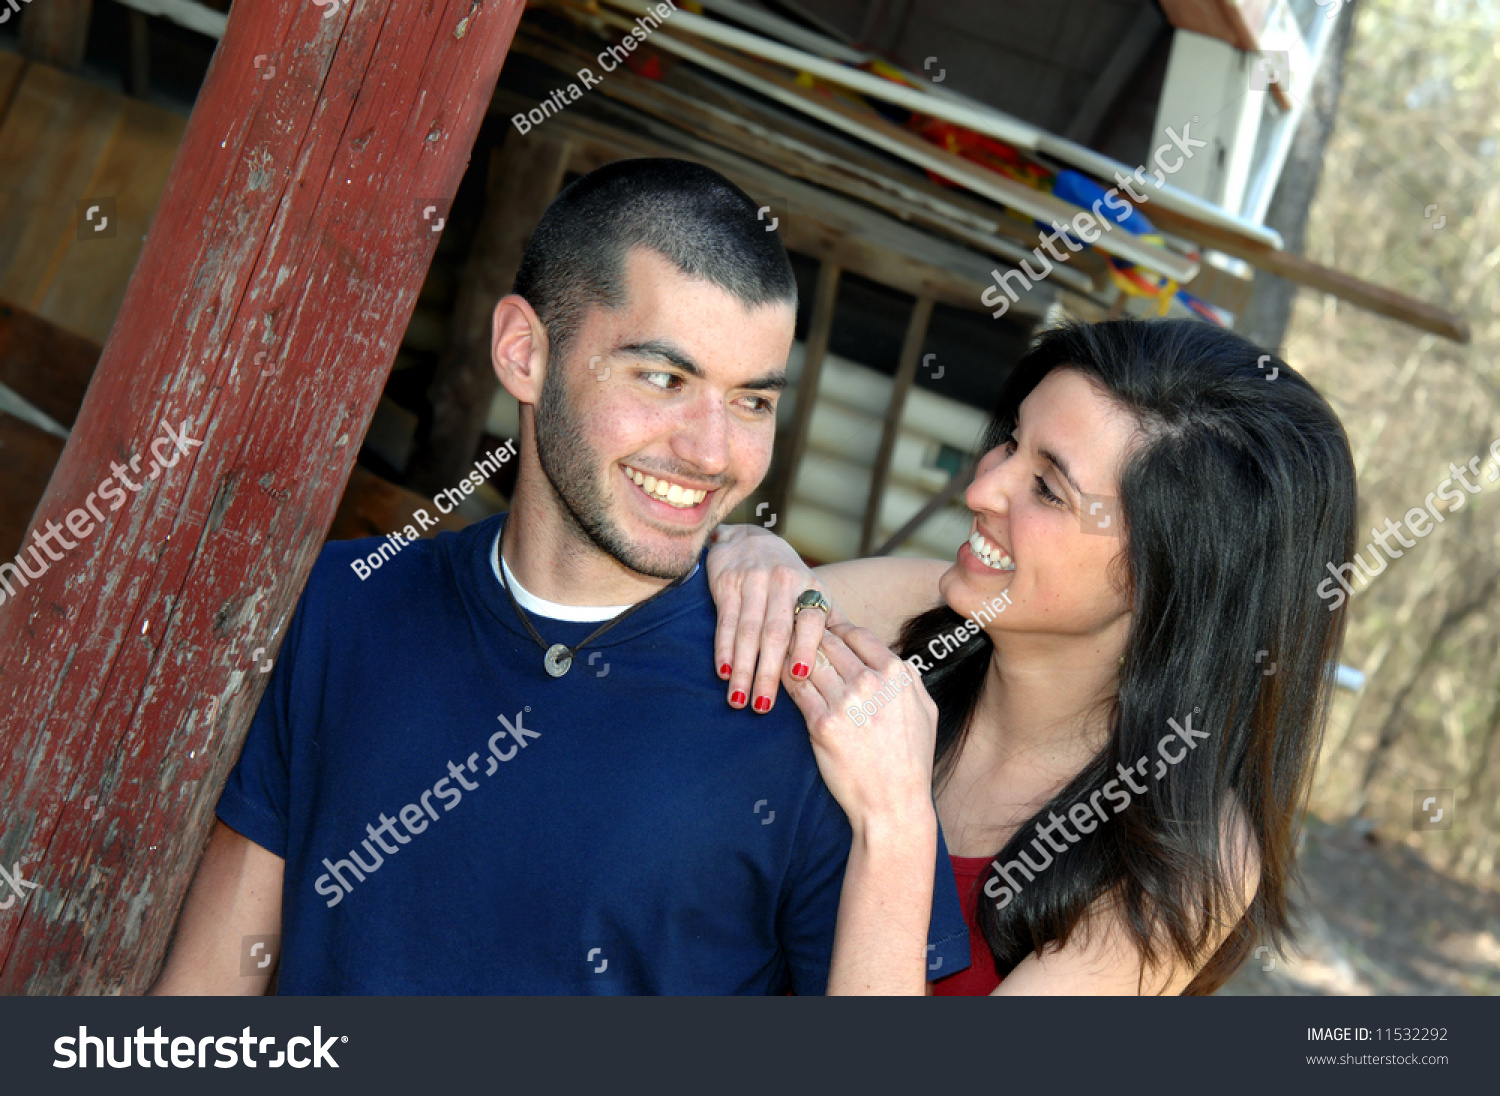 brother and sister dating each other As brother and sister opens, the two children are still in their youth and clearly in conflict over each other's choices the brother cannot control his impulse to.